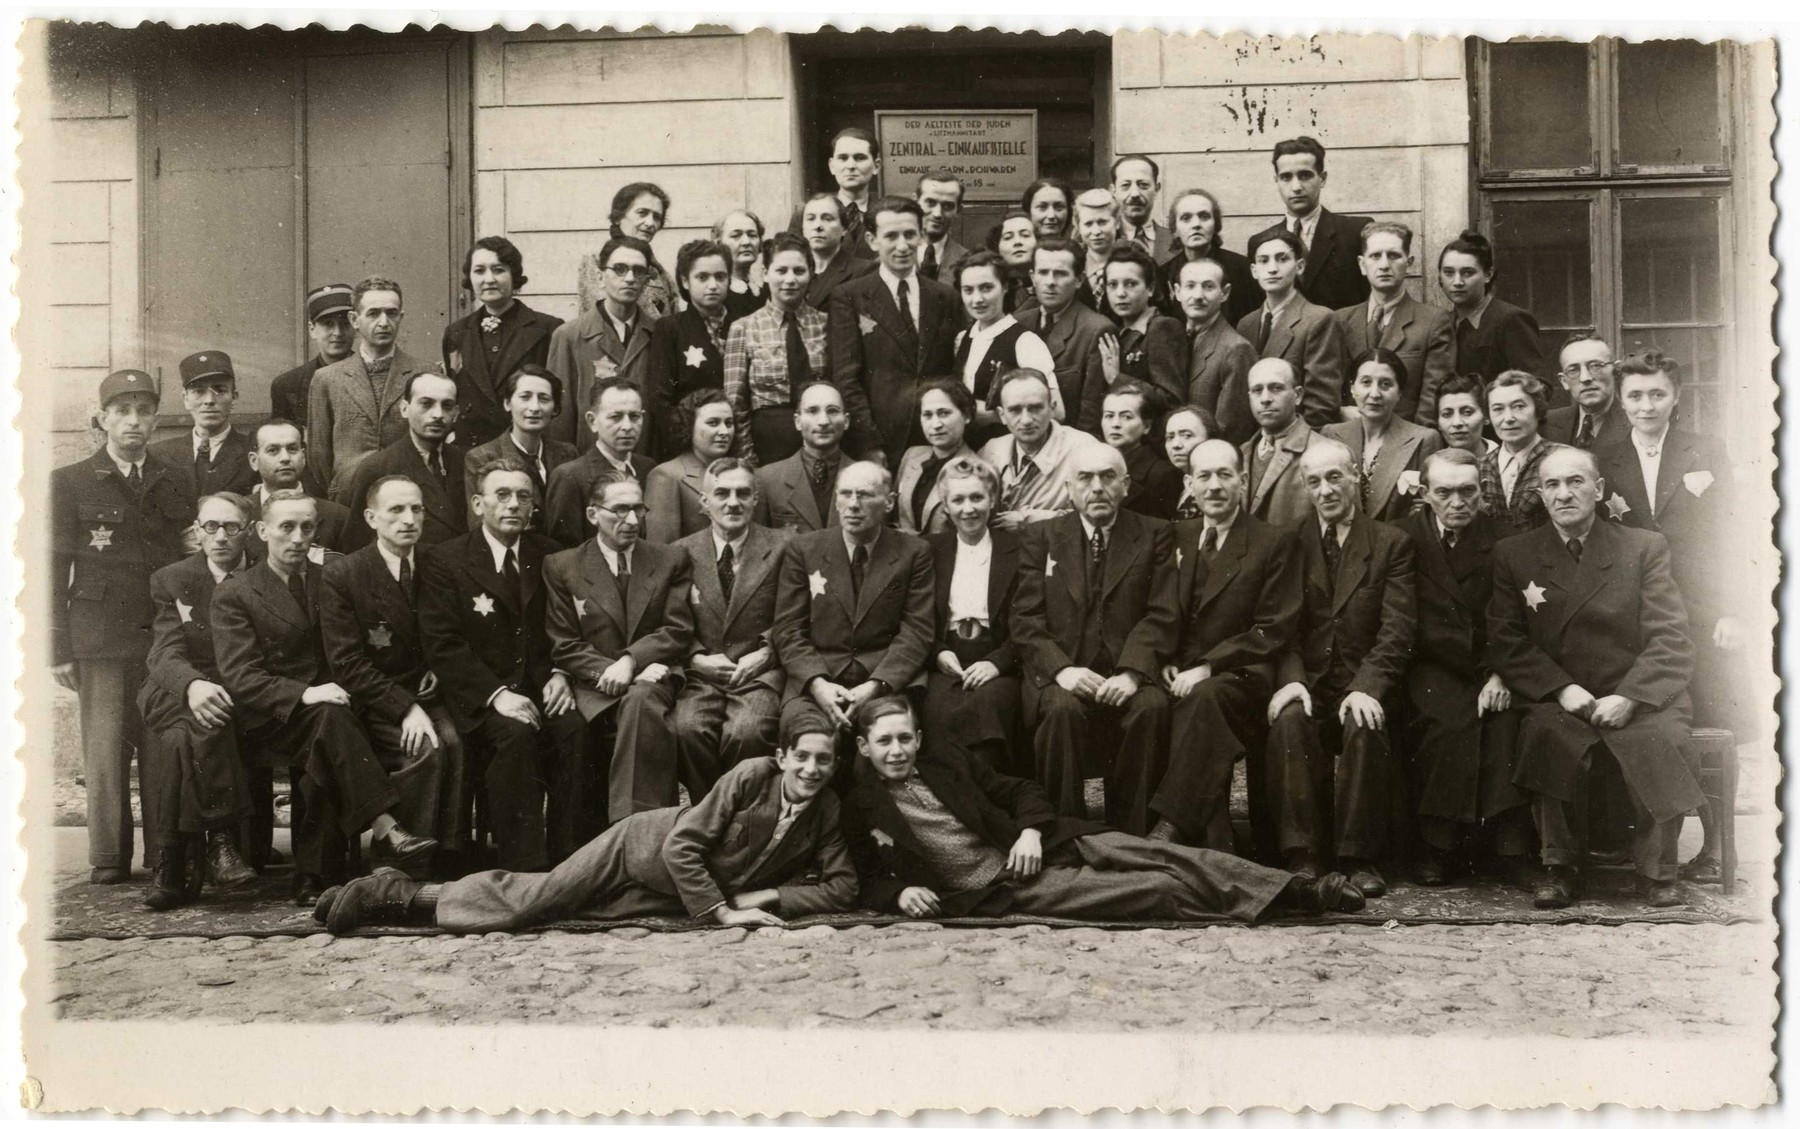 Group portrait of the employees of the Zentral Einkaufstelle, the central purchasing department of the ghetto which provided raw materials to the other ghetto workshops.  Pictured in the front row, sixth from the left is Gustaw Gerson, the director of the Einkaufstelle.  To his immediate right and in the center of the photograph is Dawid Warszawski, head of the textile workshops.